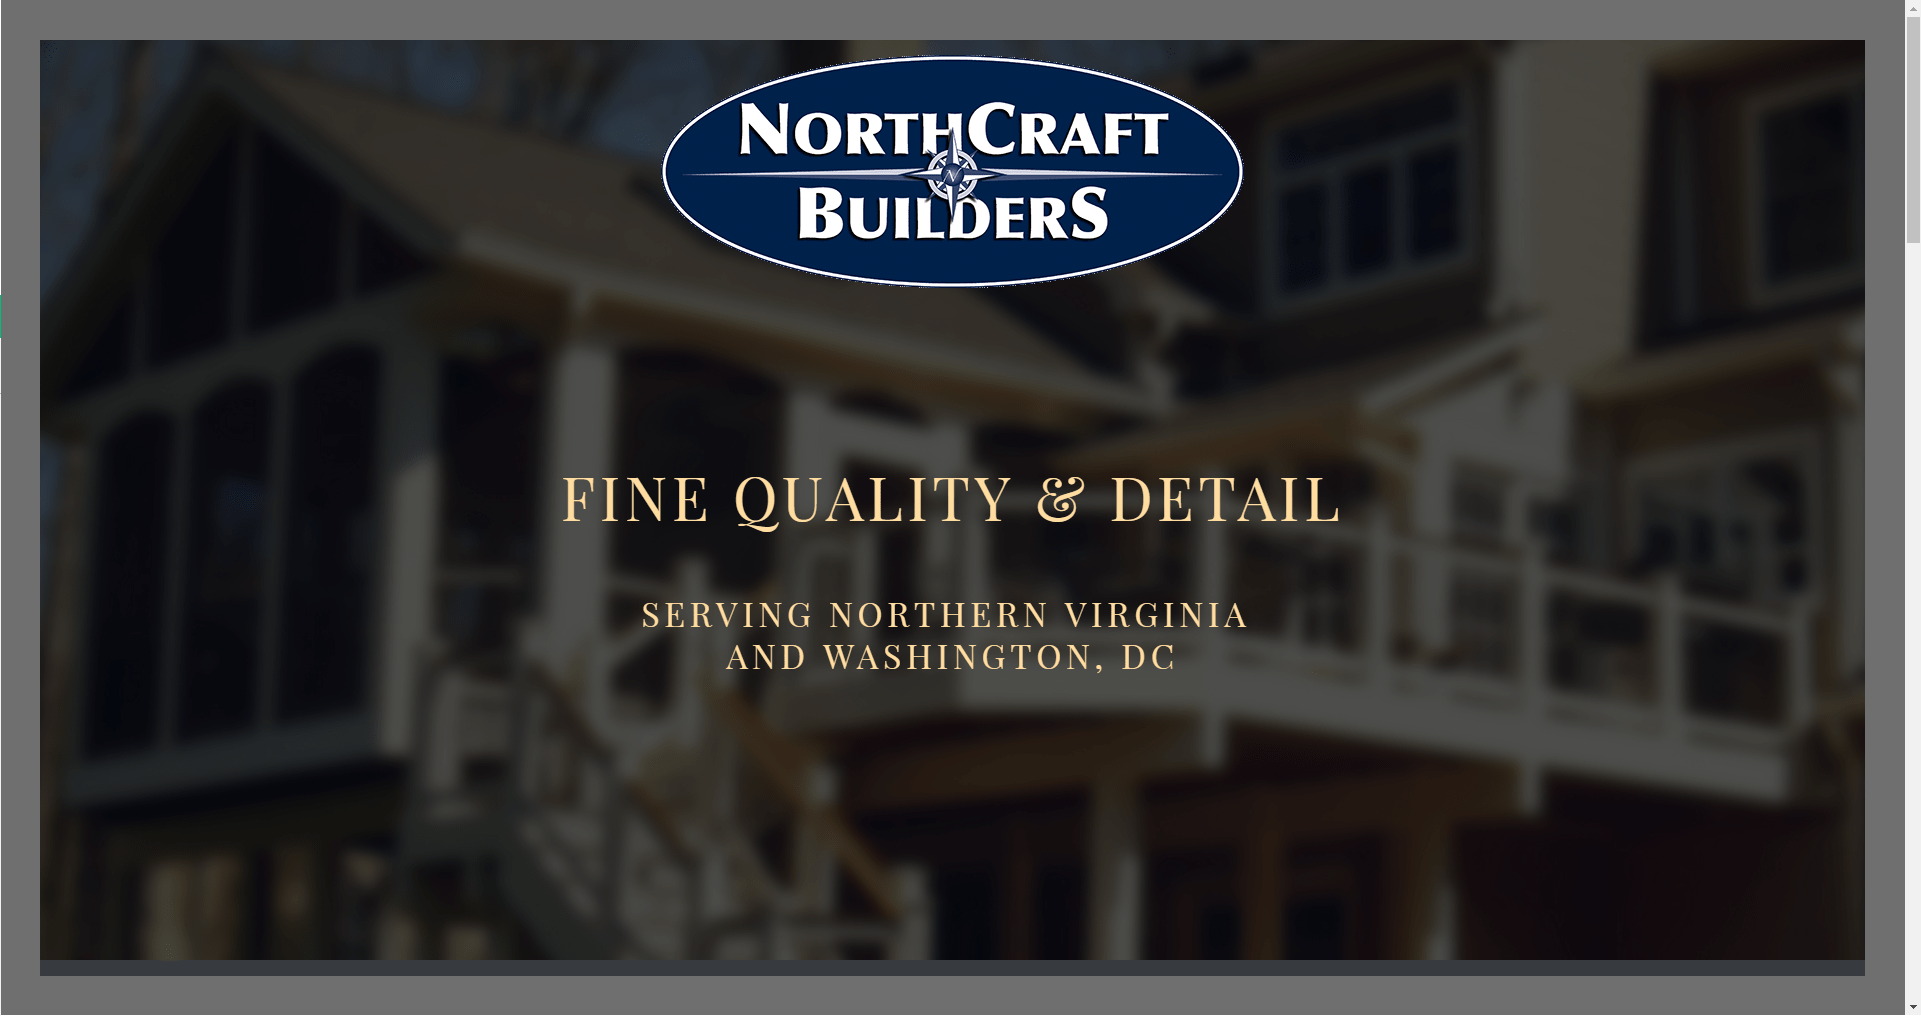 Northcraft Builders